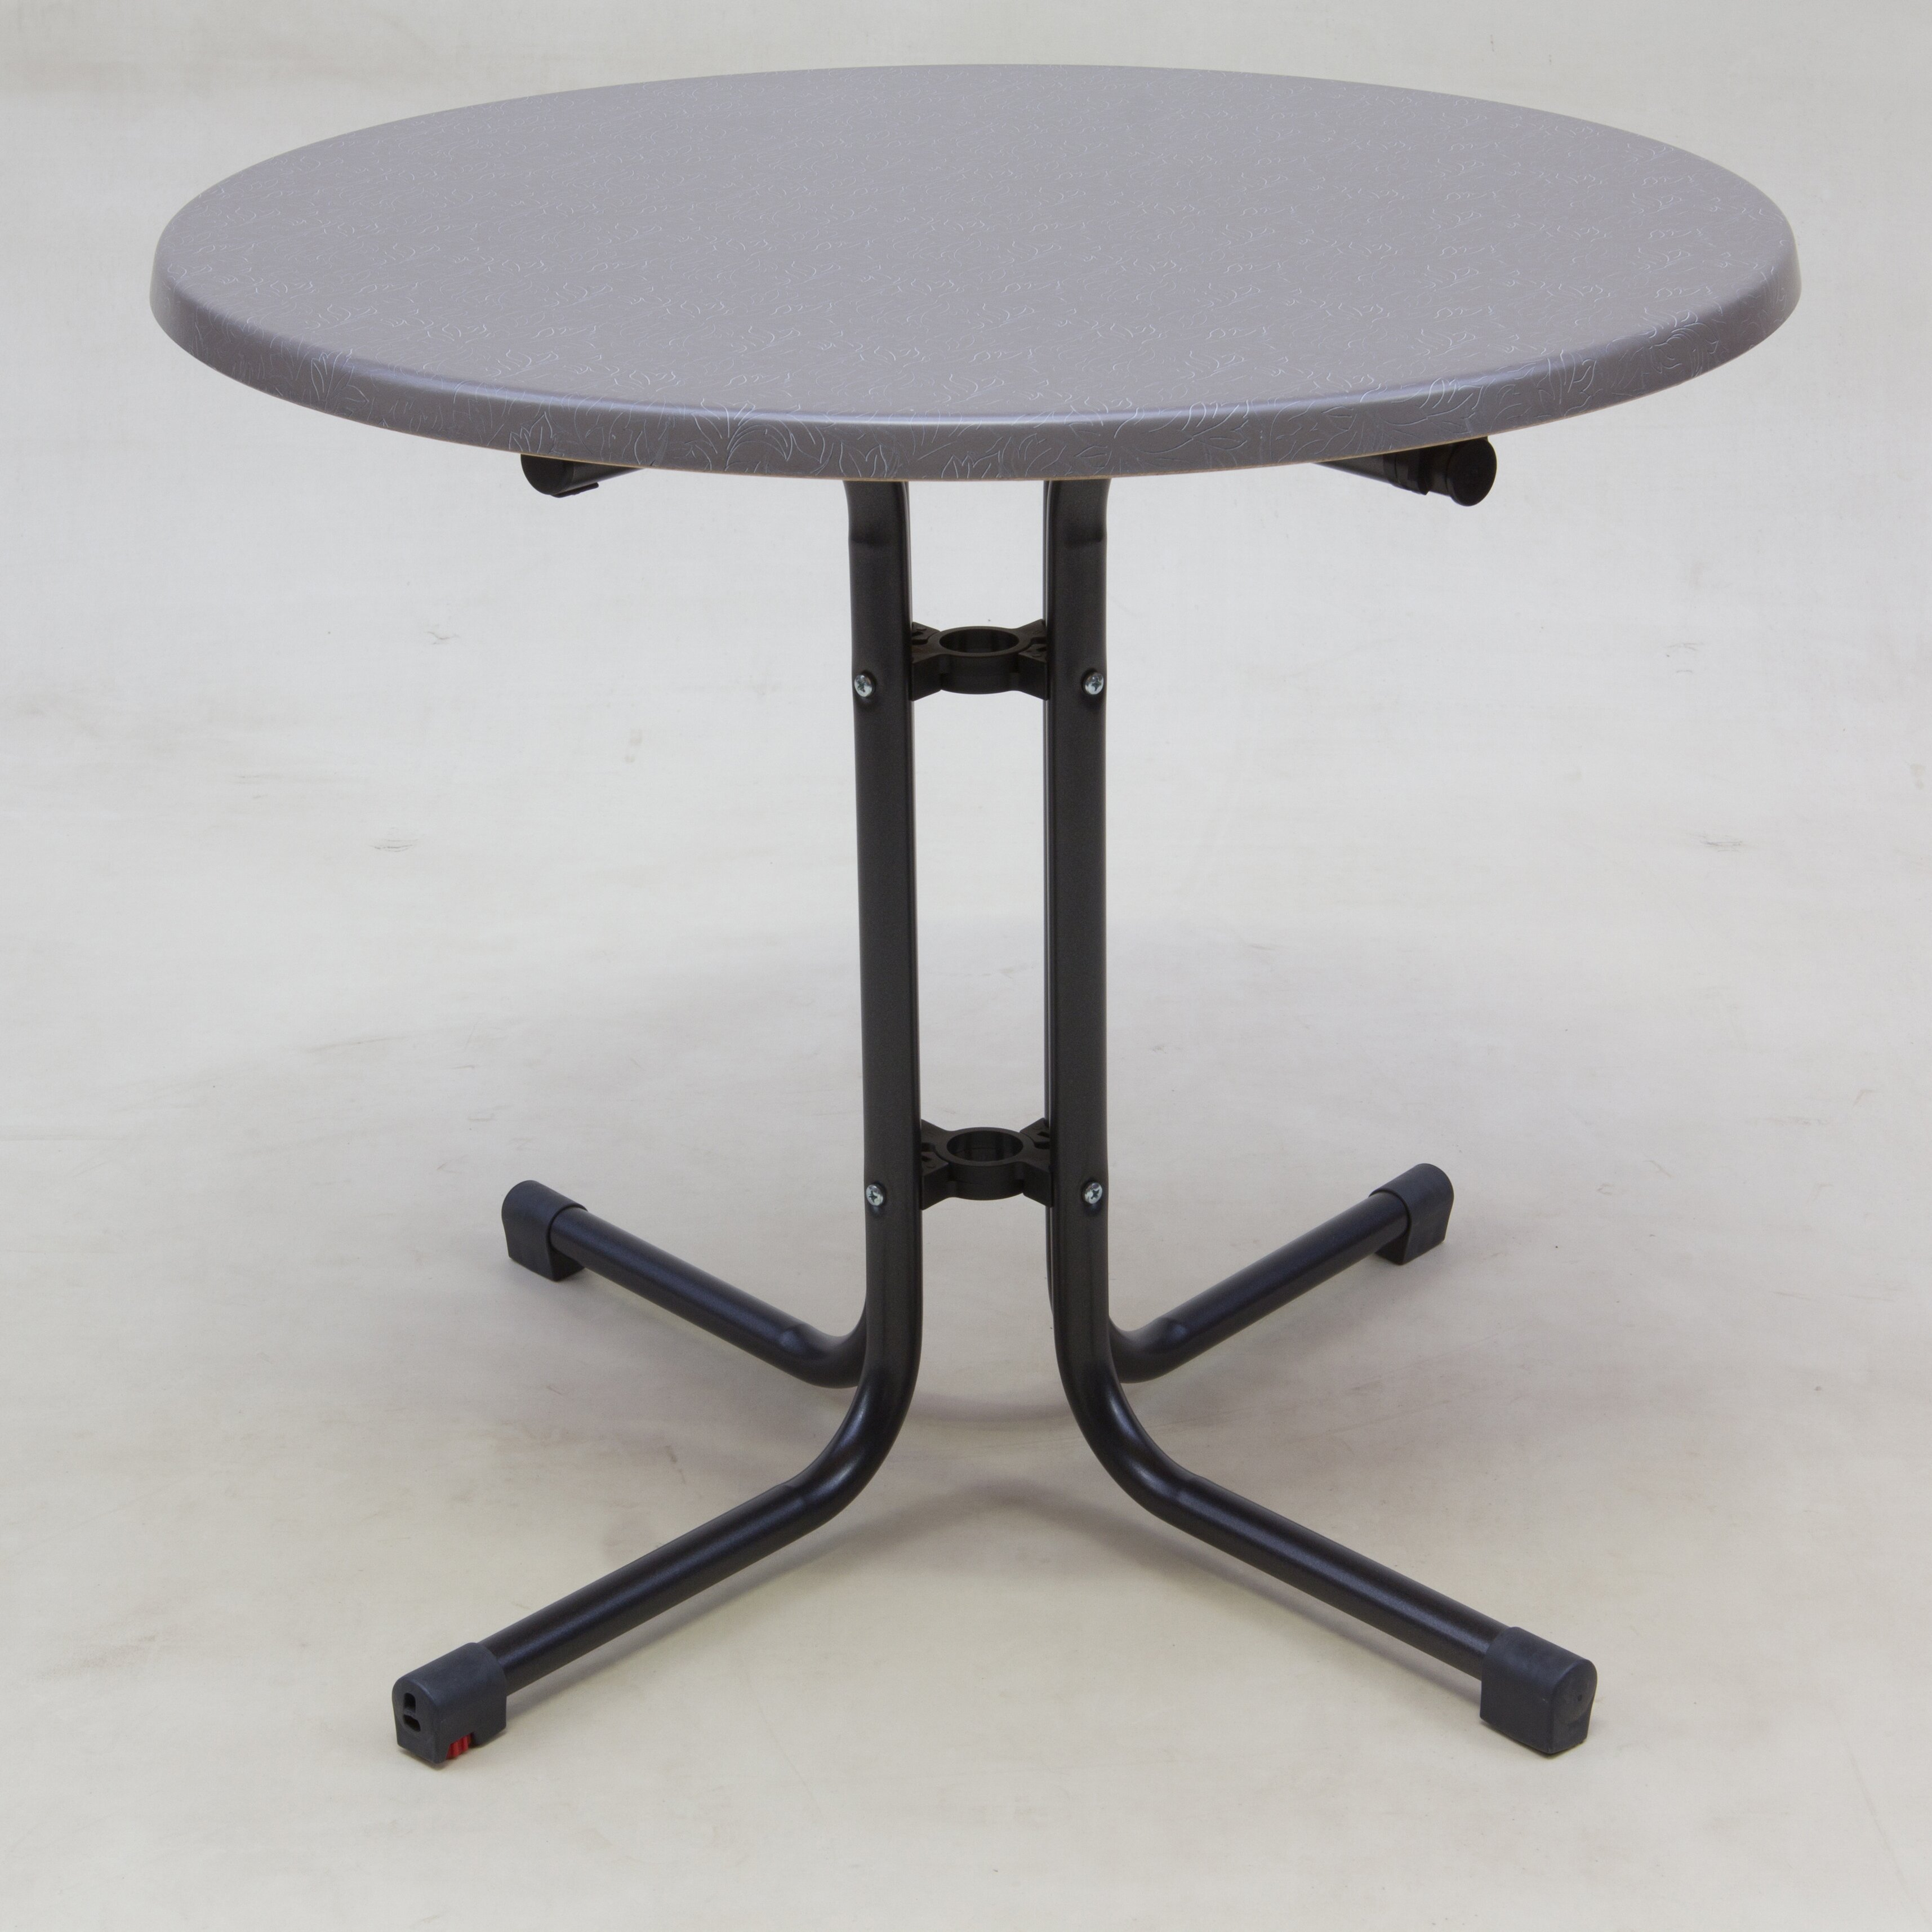 Fritz mueller basic dining table reviews for Basic dining table